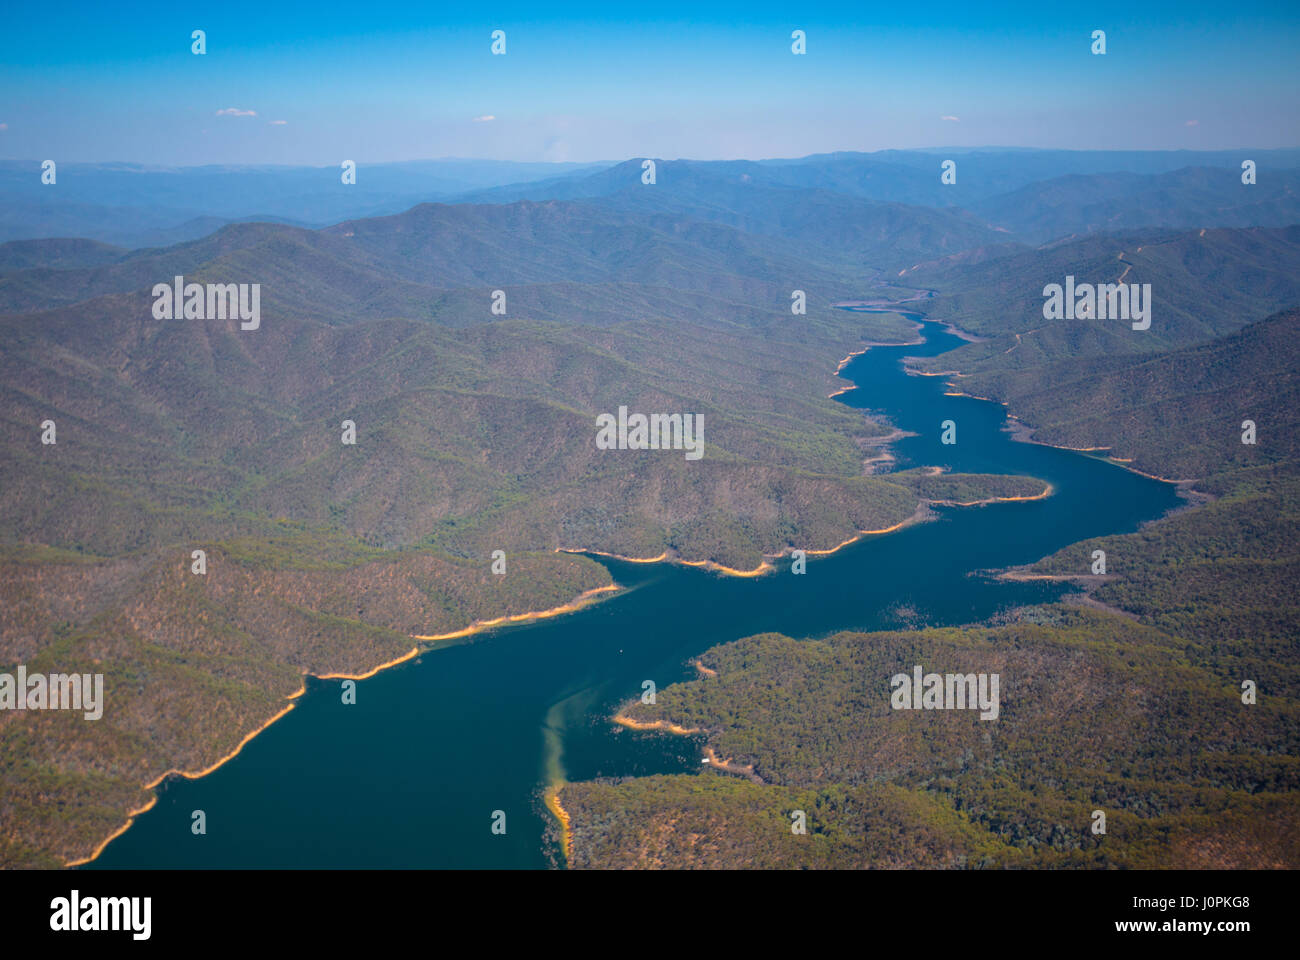 An aerial view of the water level in Lake Dartmouth, Australia - Stock Image